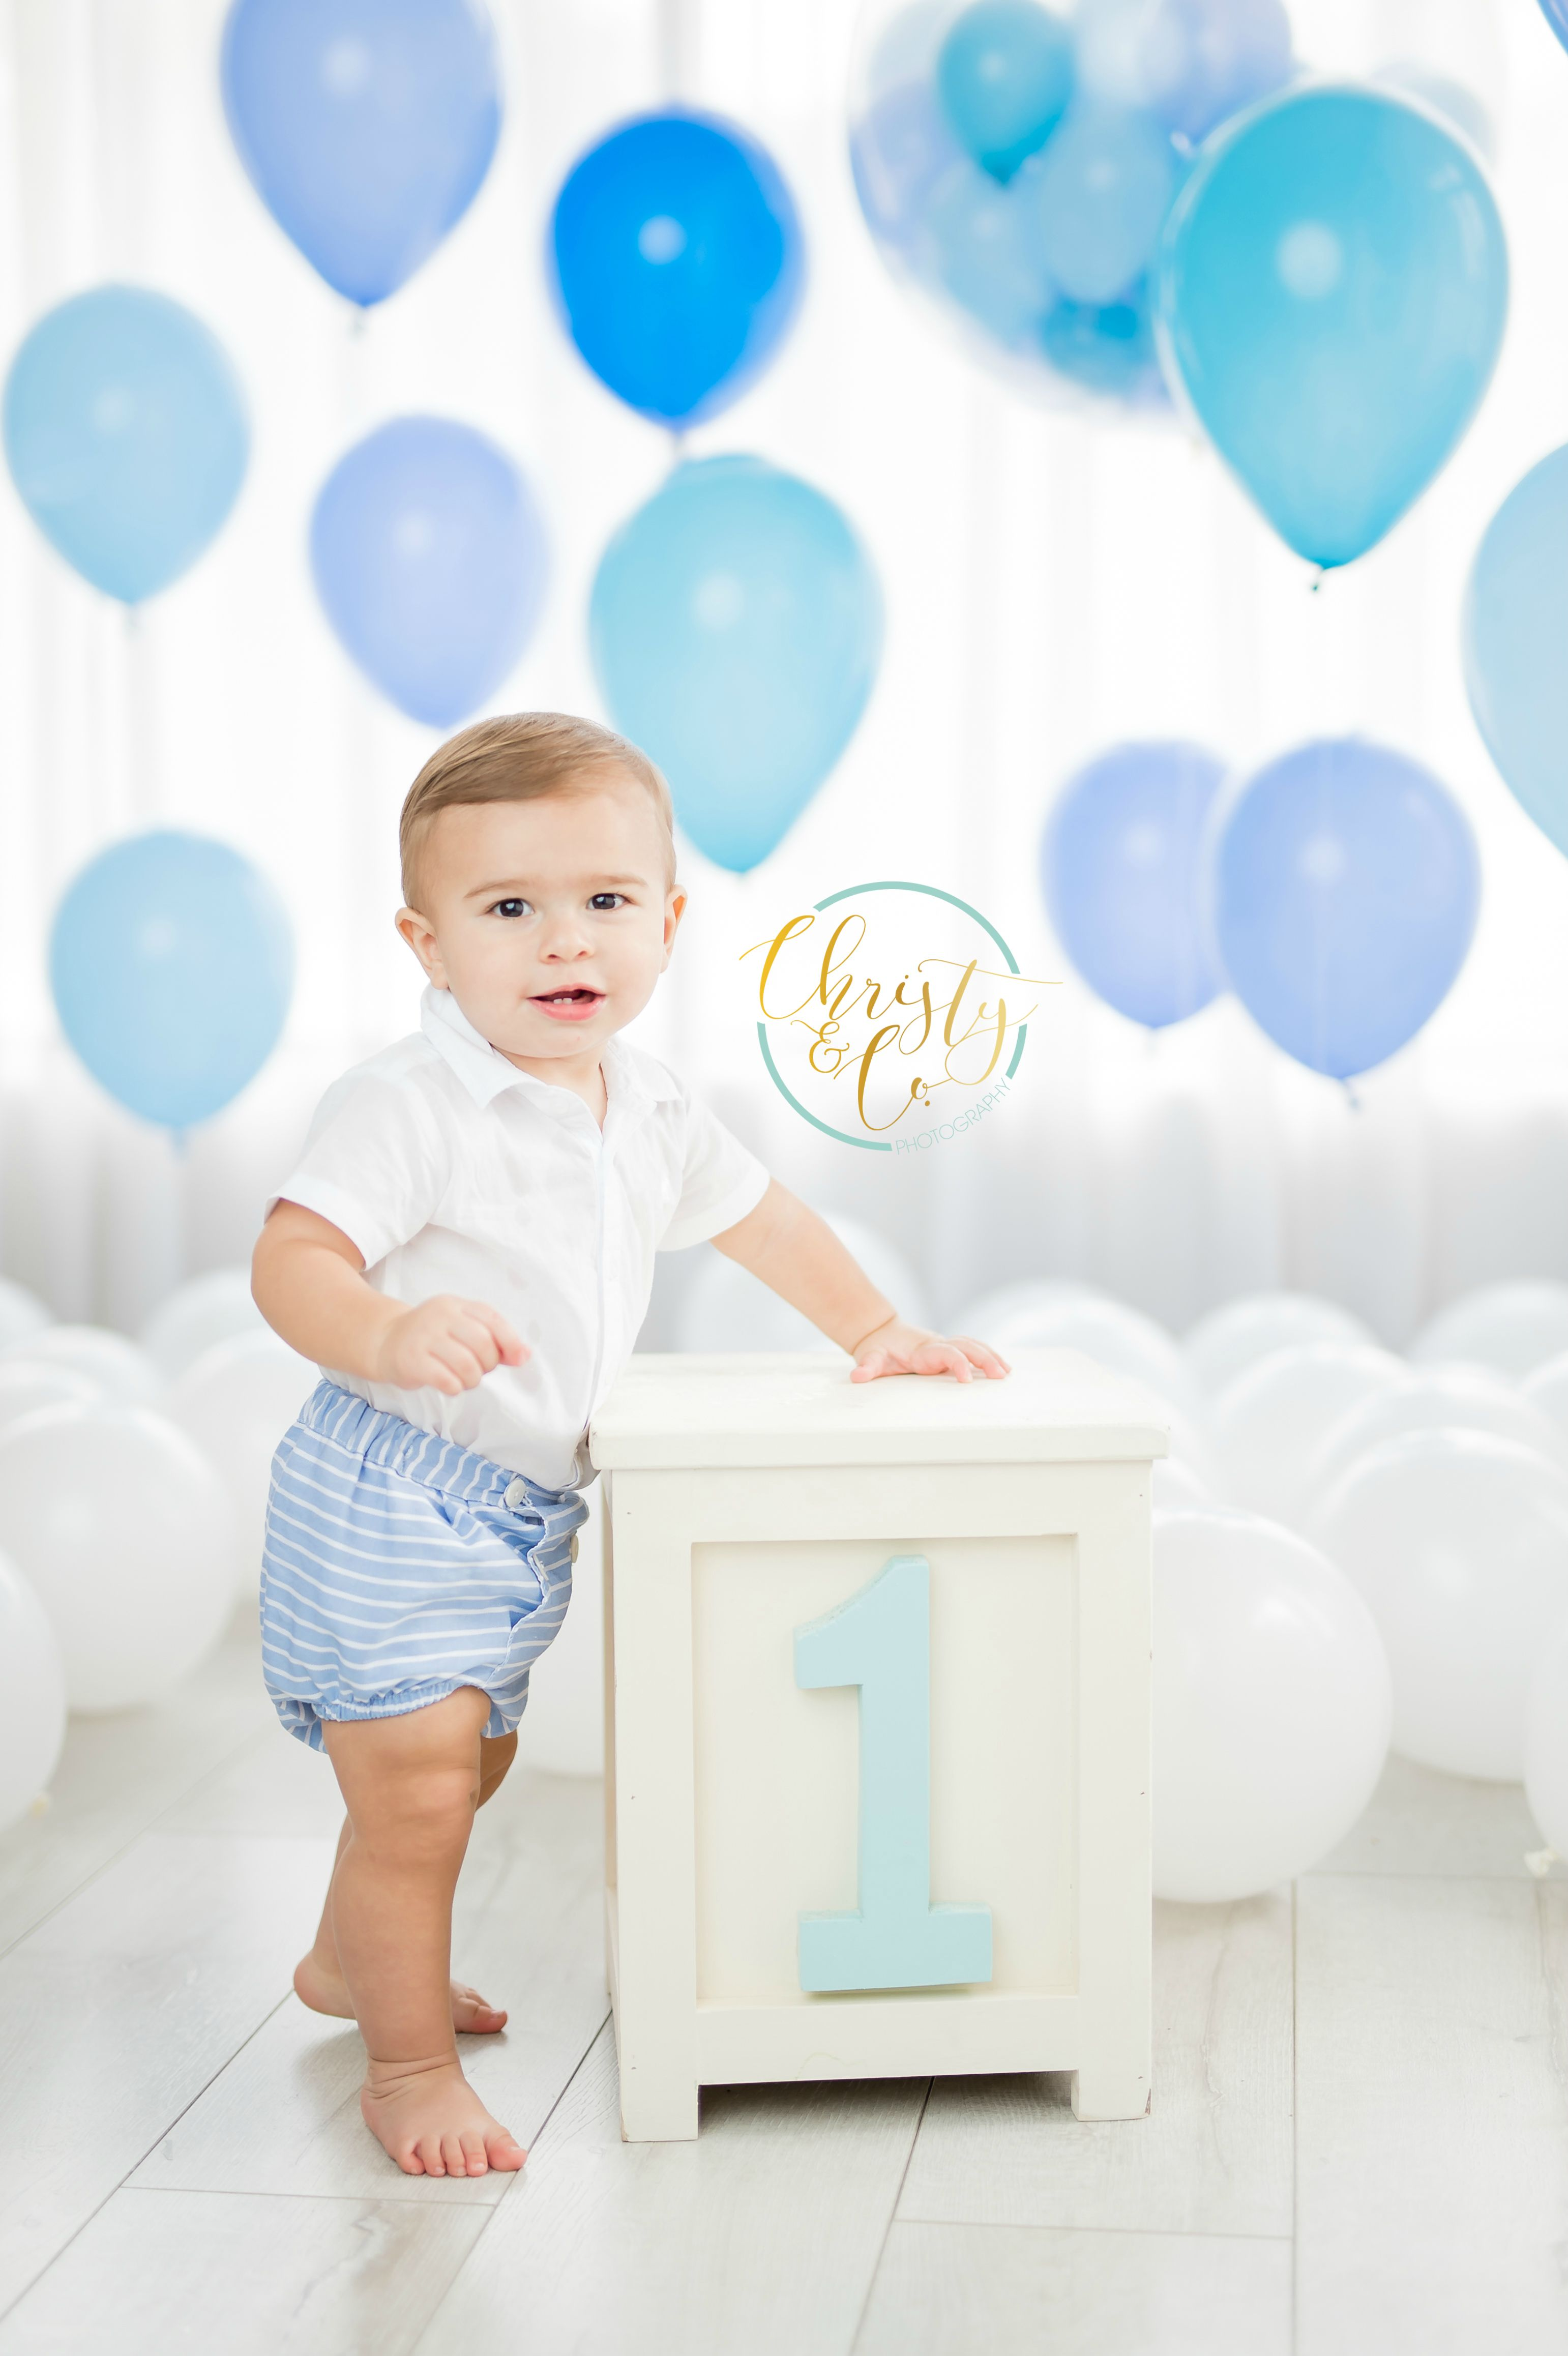 Classic Little Boy First Birthday Session Christy Co Photography First Birthday Theme Boy 1st Birthday Pictures First Birthday Pictures